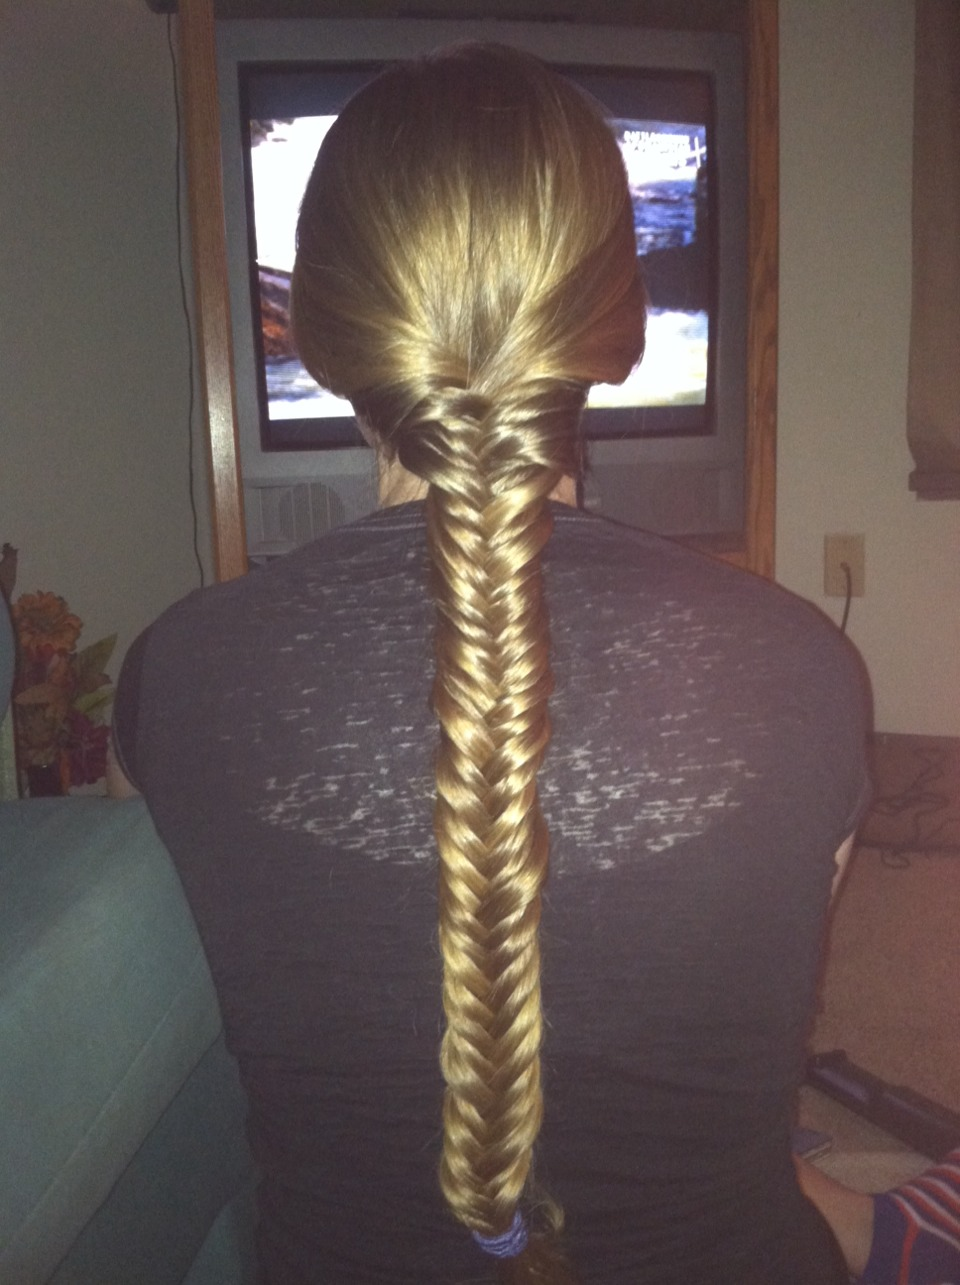 Long and thick hair like my sisters? Well use smaller pieces and use your thumbs to hold the pieces to get a tight braid